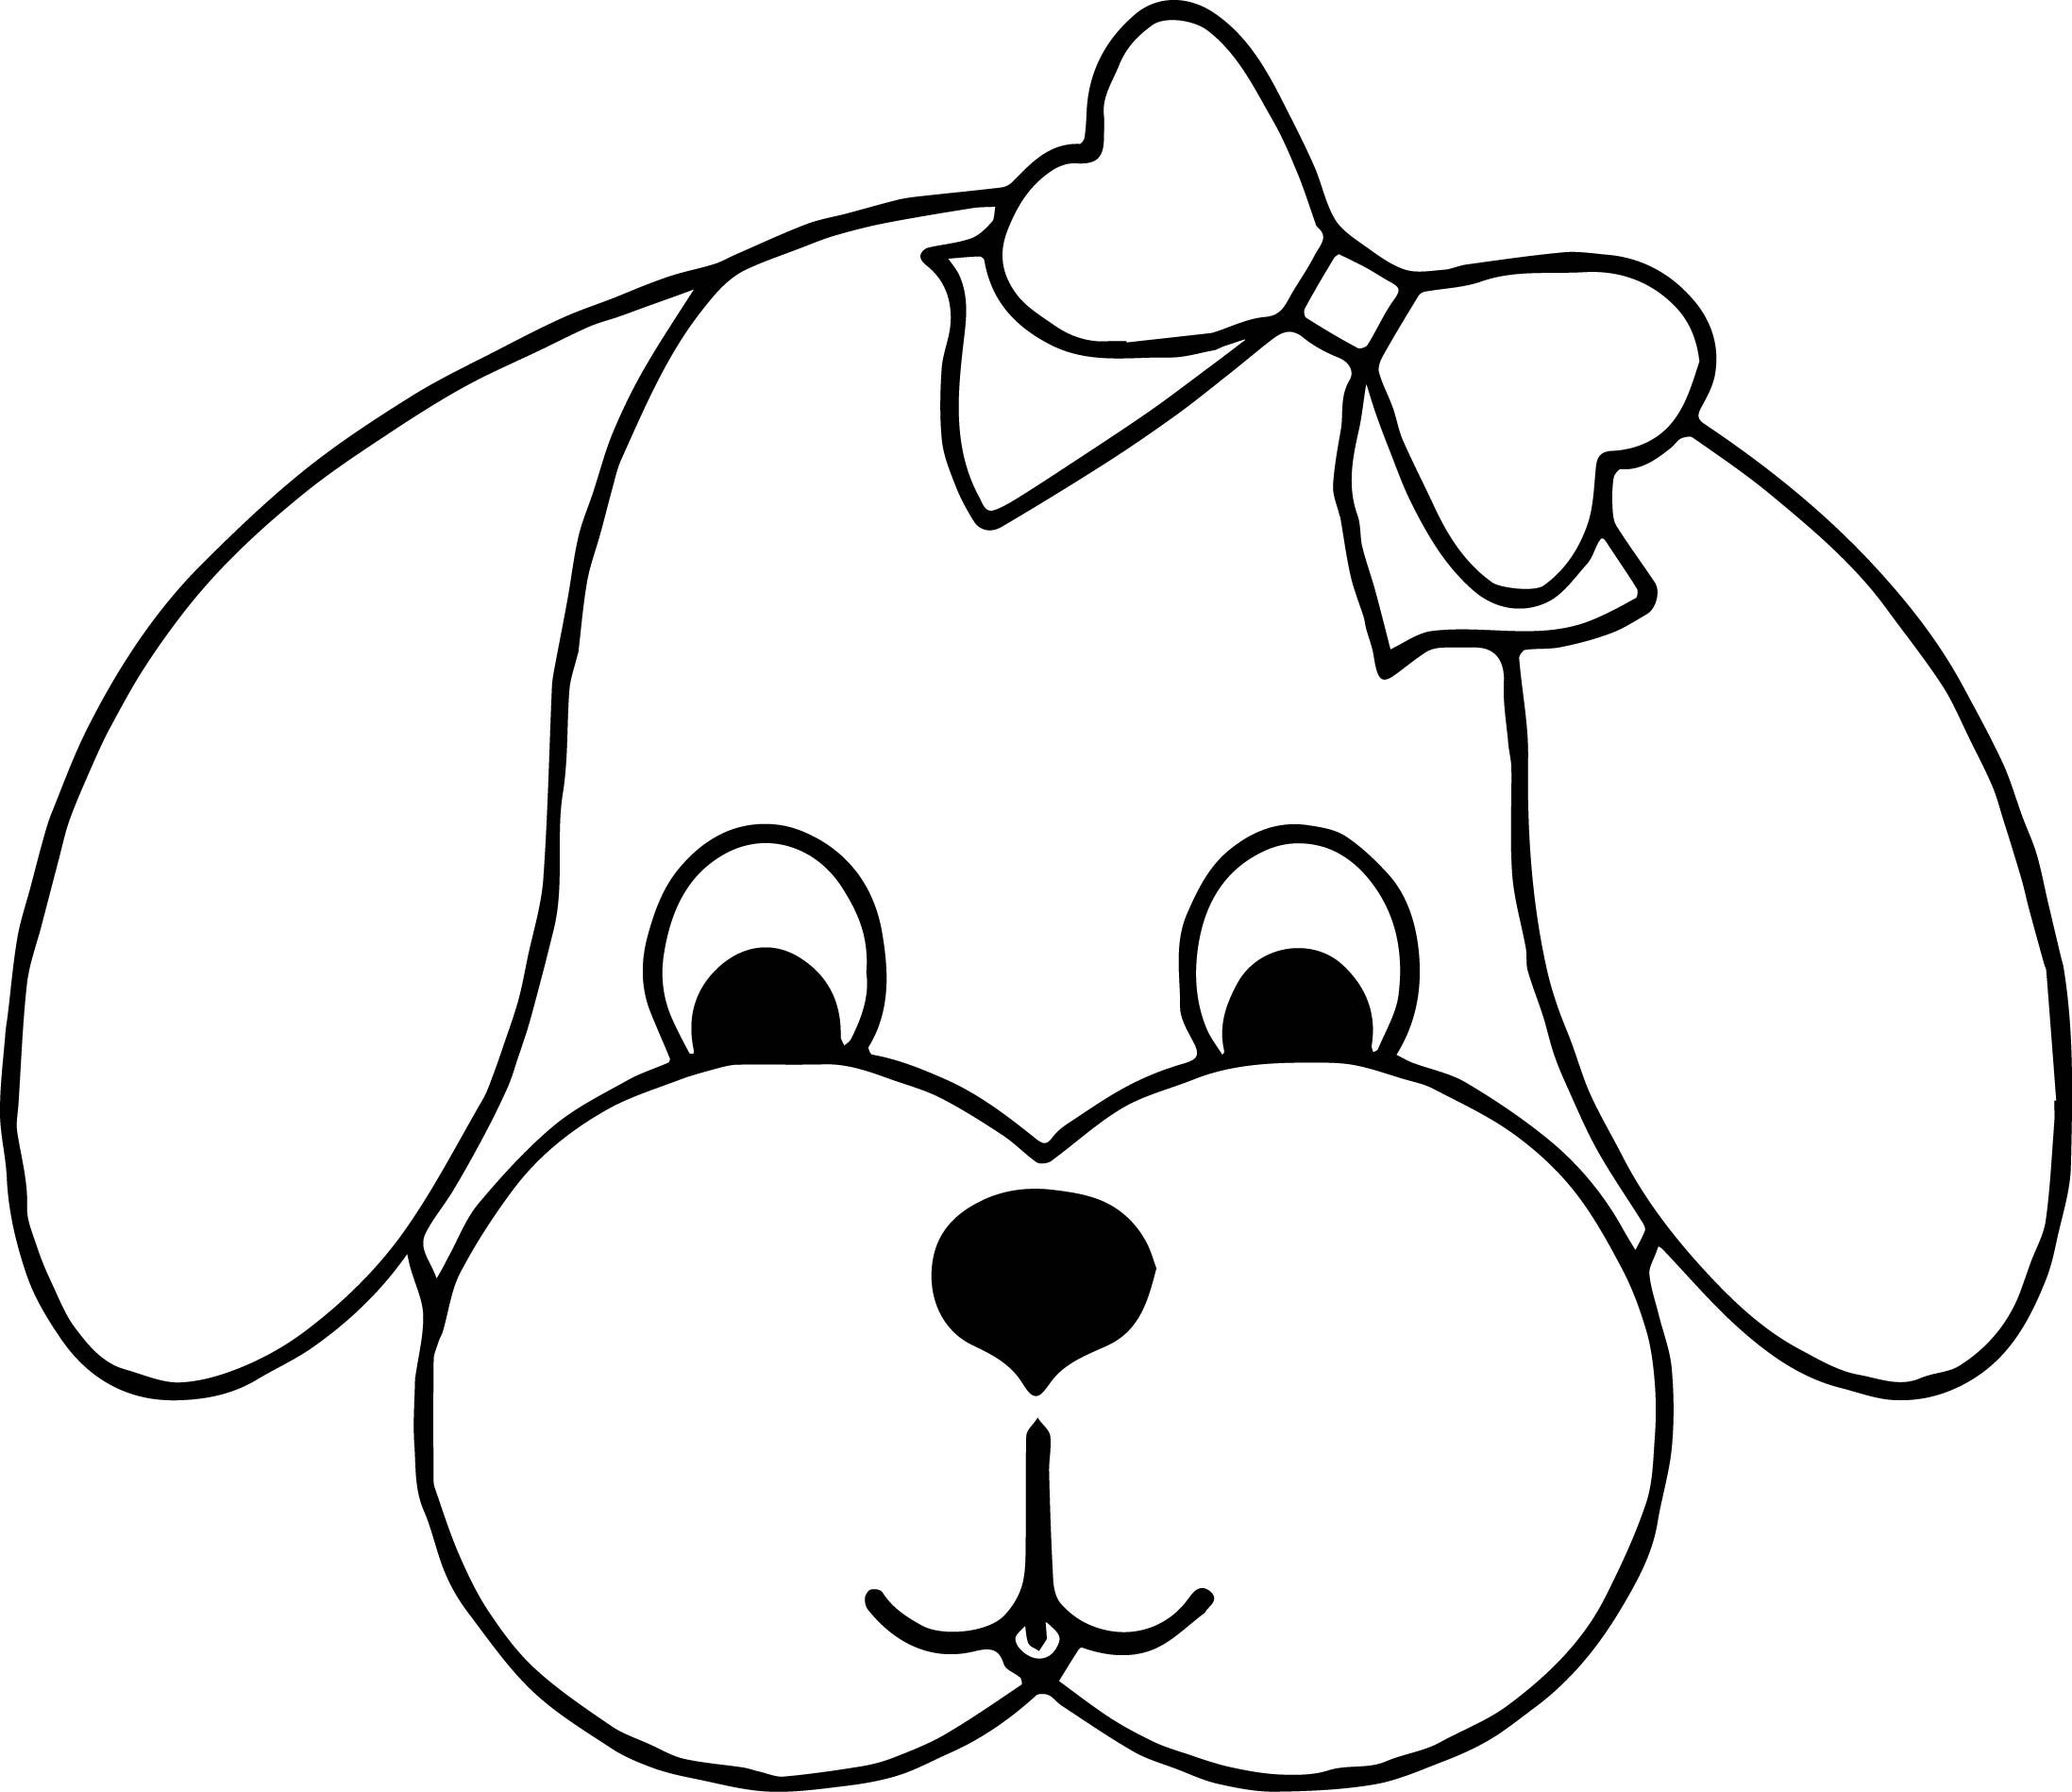 coloring dog face cute dog face drawing at getdrawings free download face dog coloring